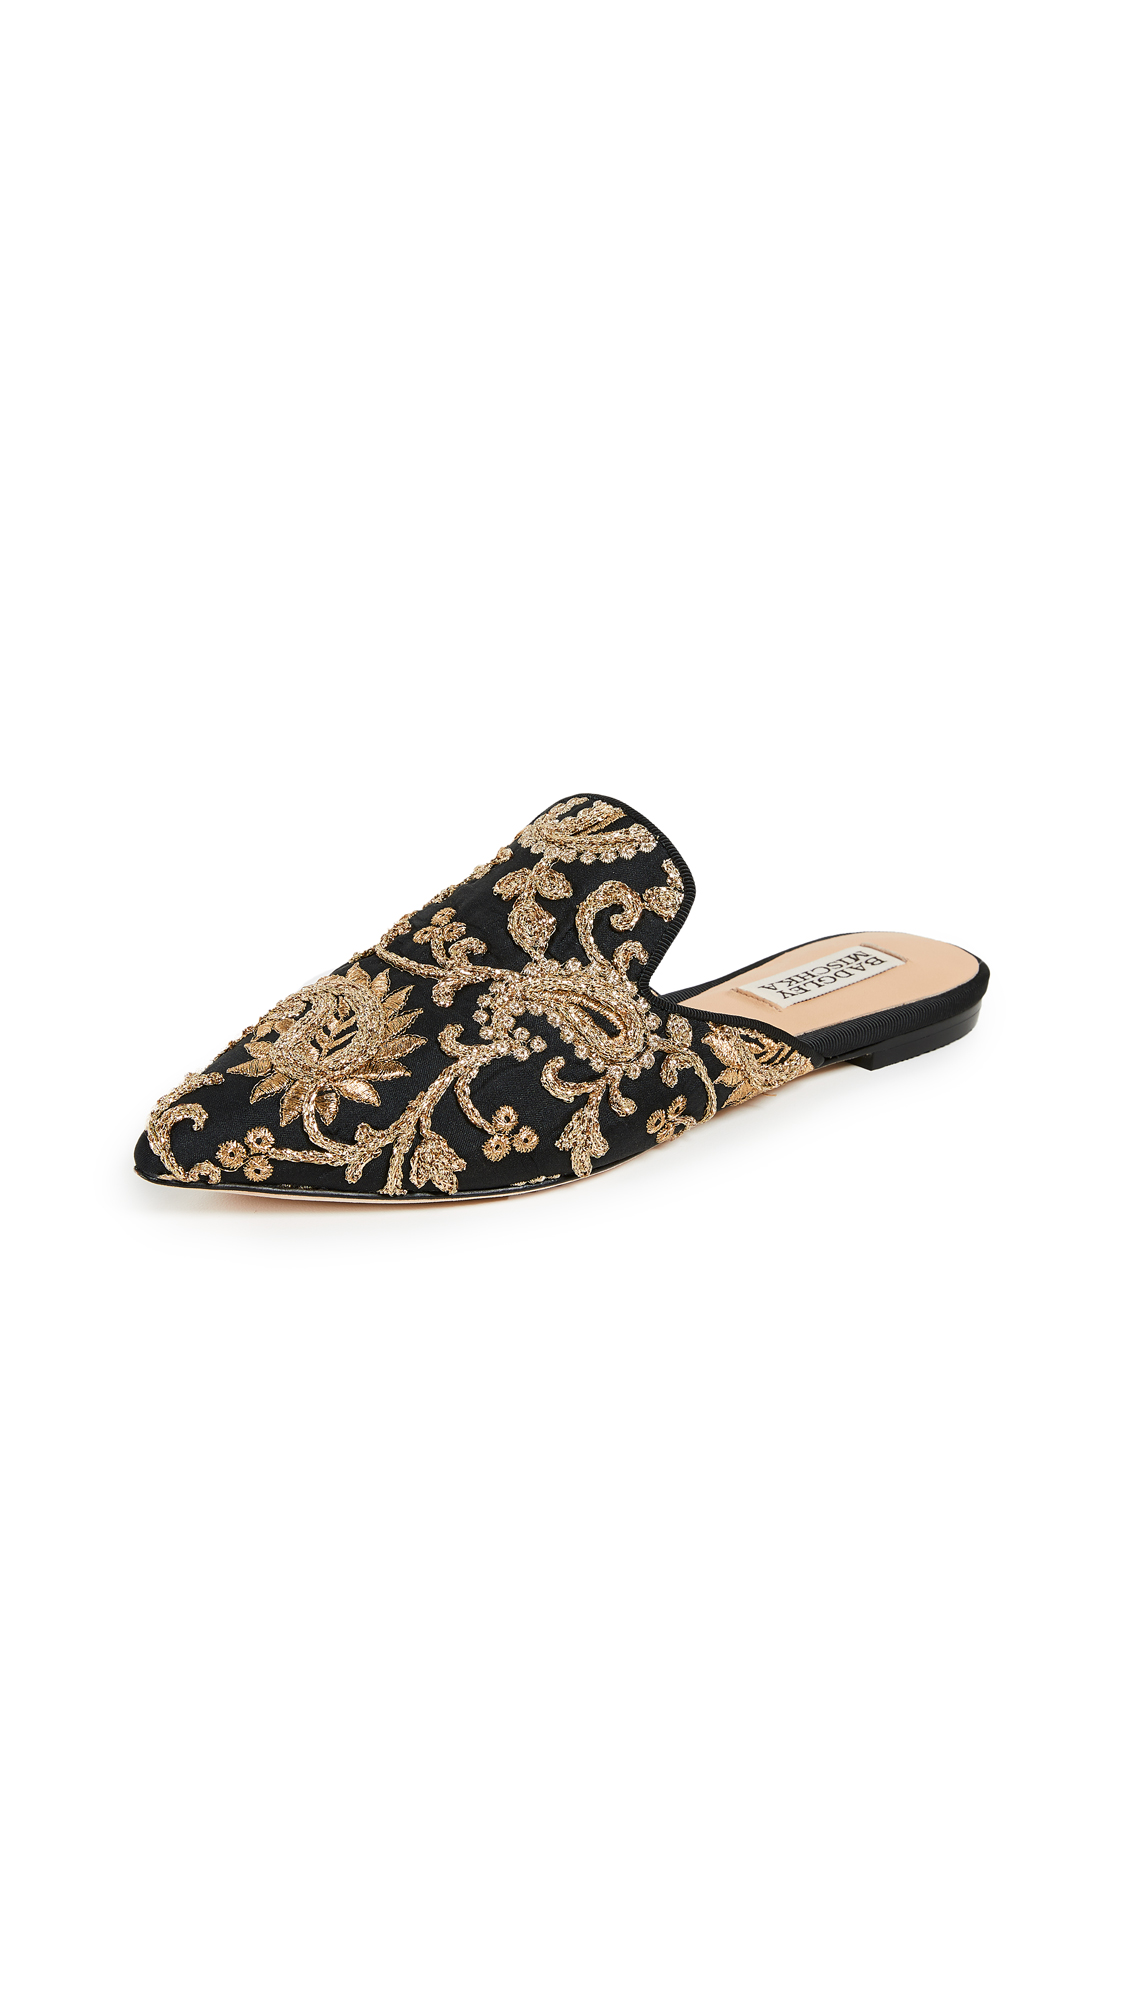 Badgley Mischka Phoebe Point Toe Mules